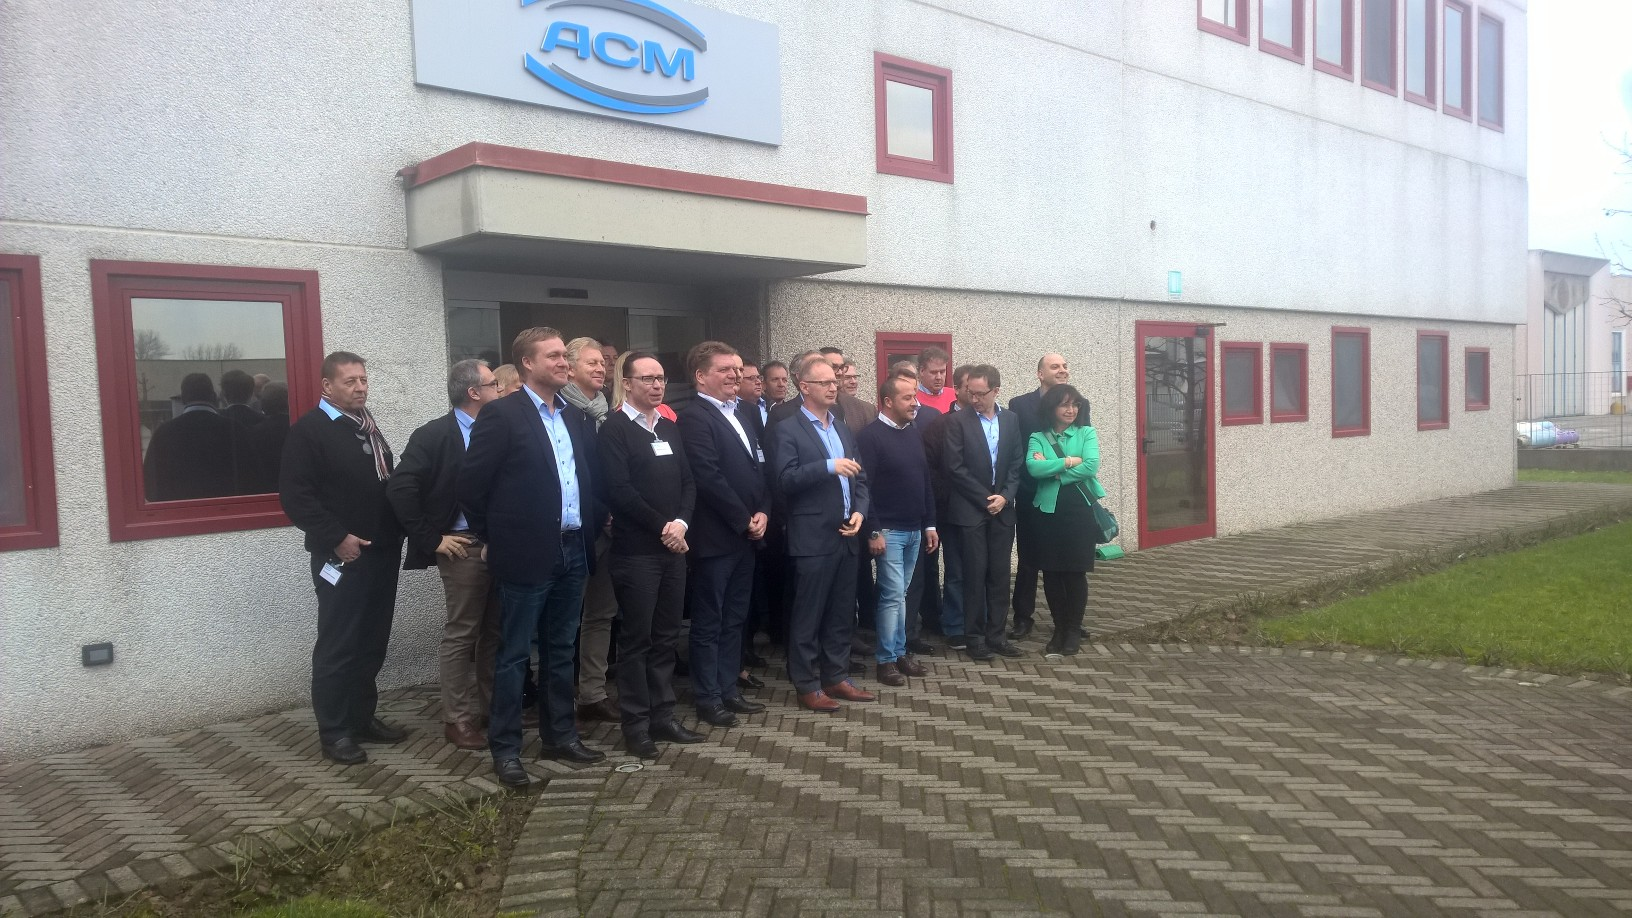 ACM Plastics, located just outside of Milan, Italy,is one of Europe's fastest-growing and leading producers of flexible film packaging for food and other industries.